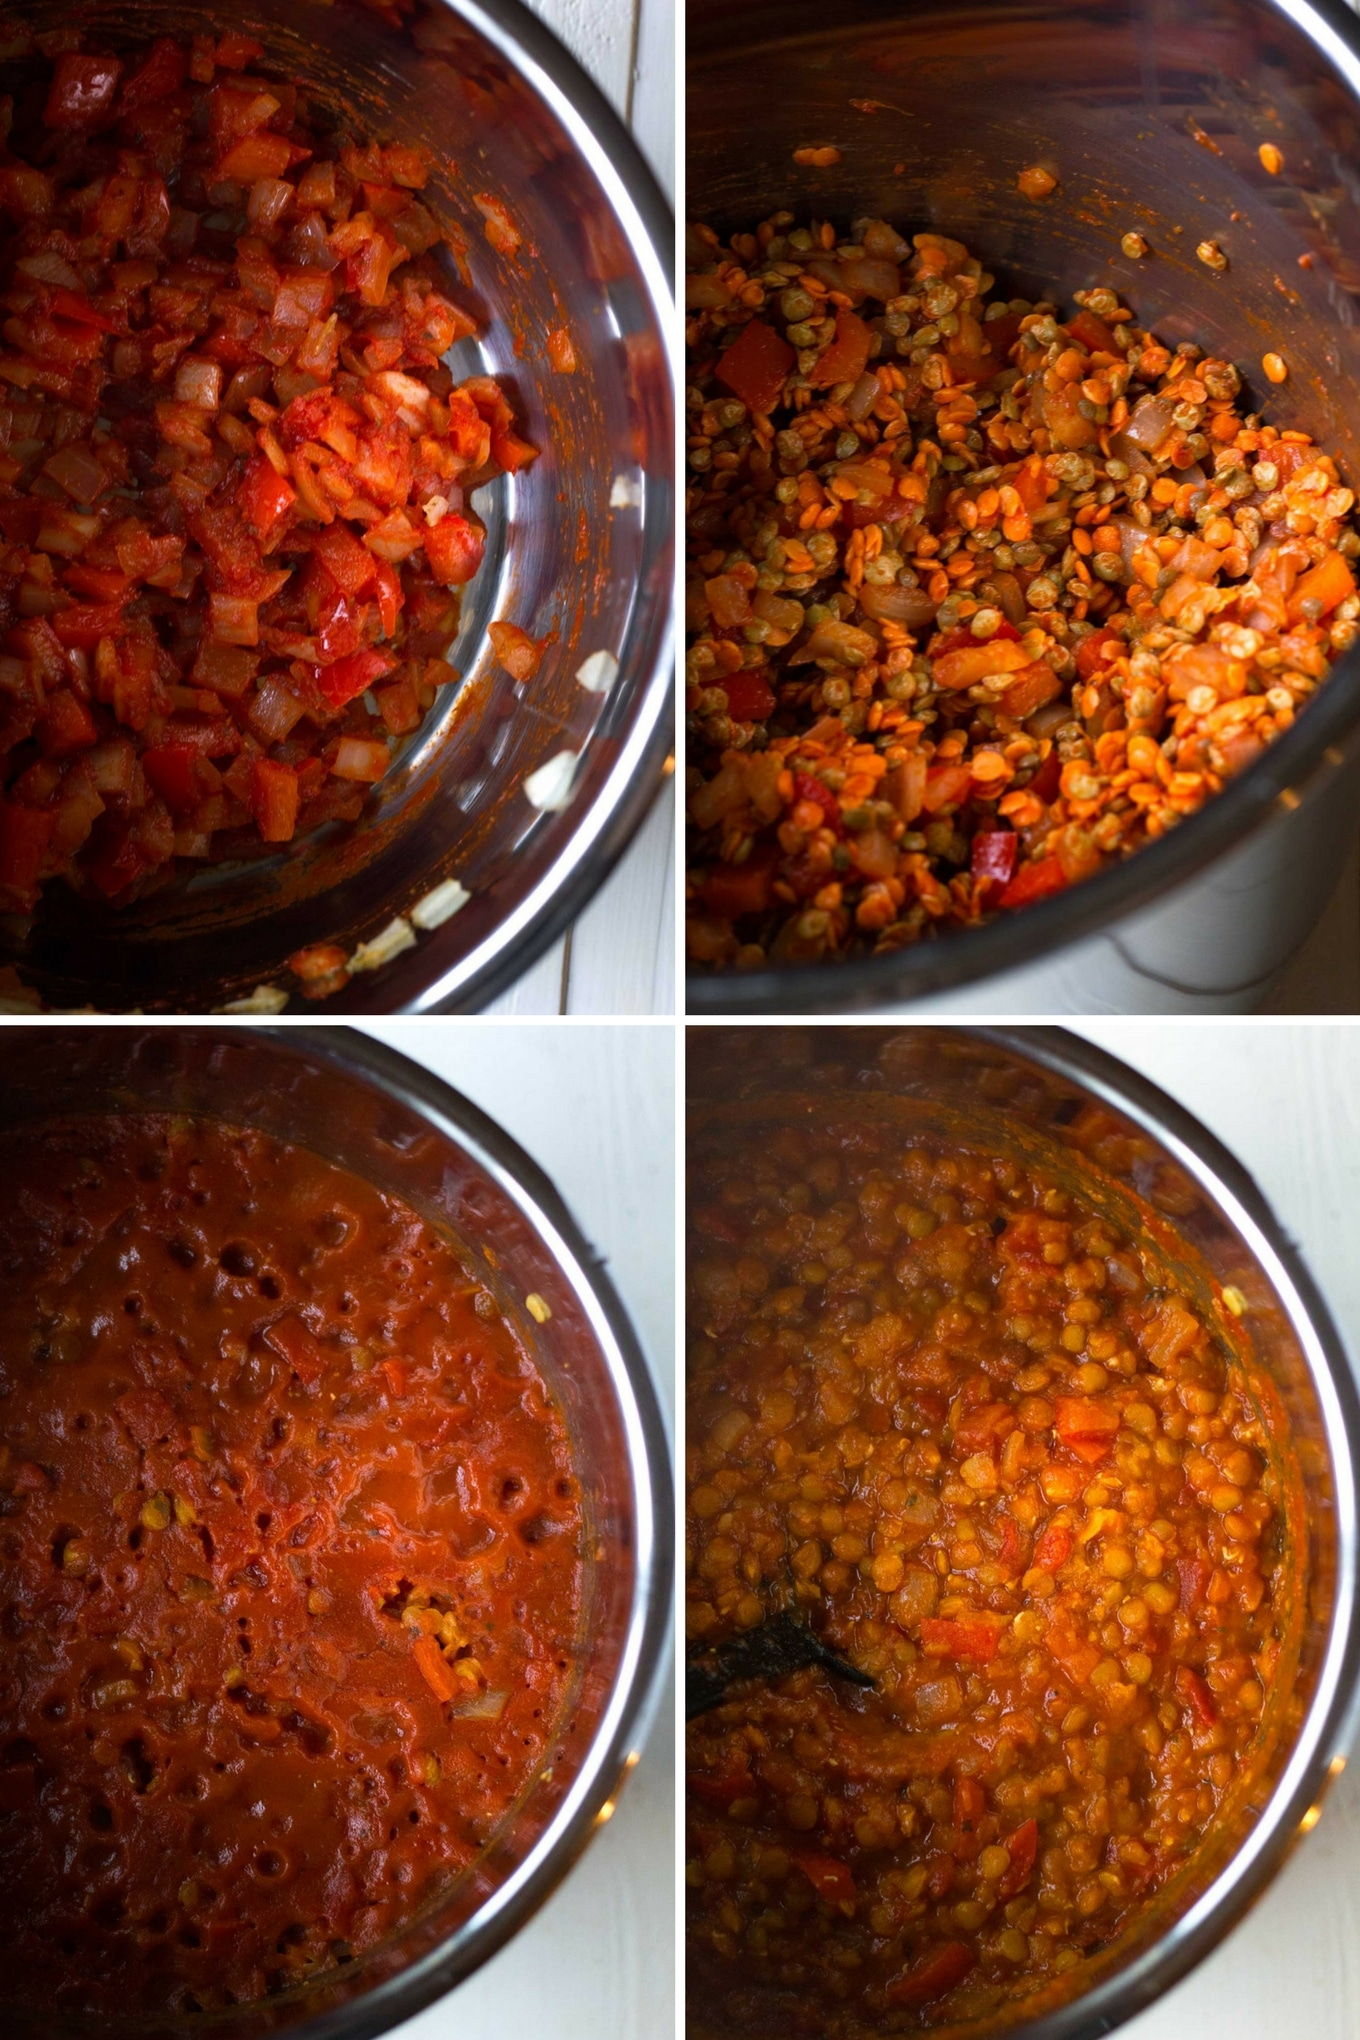 Instant Pot Vegan Sloppy Joes | Recipe | Plant-based | Oil-free | Vegan | http://www.eatwithinyourmeans.com/